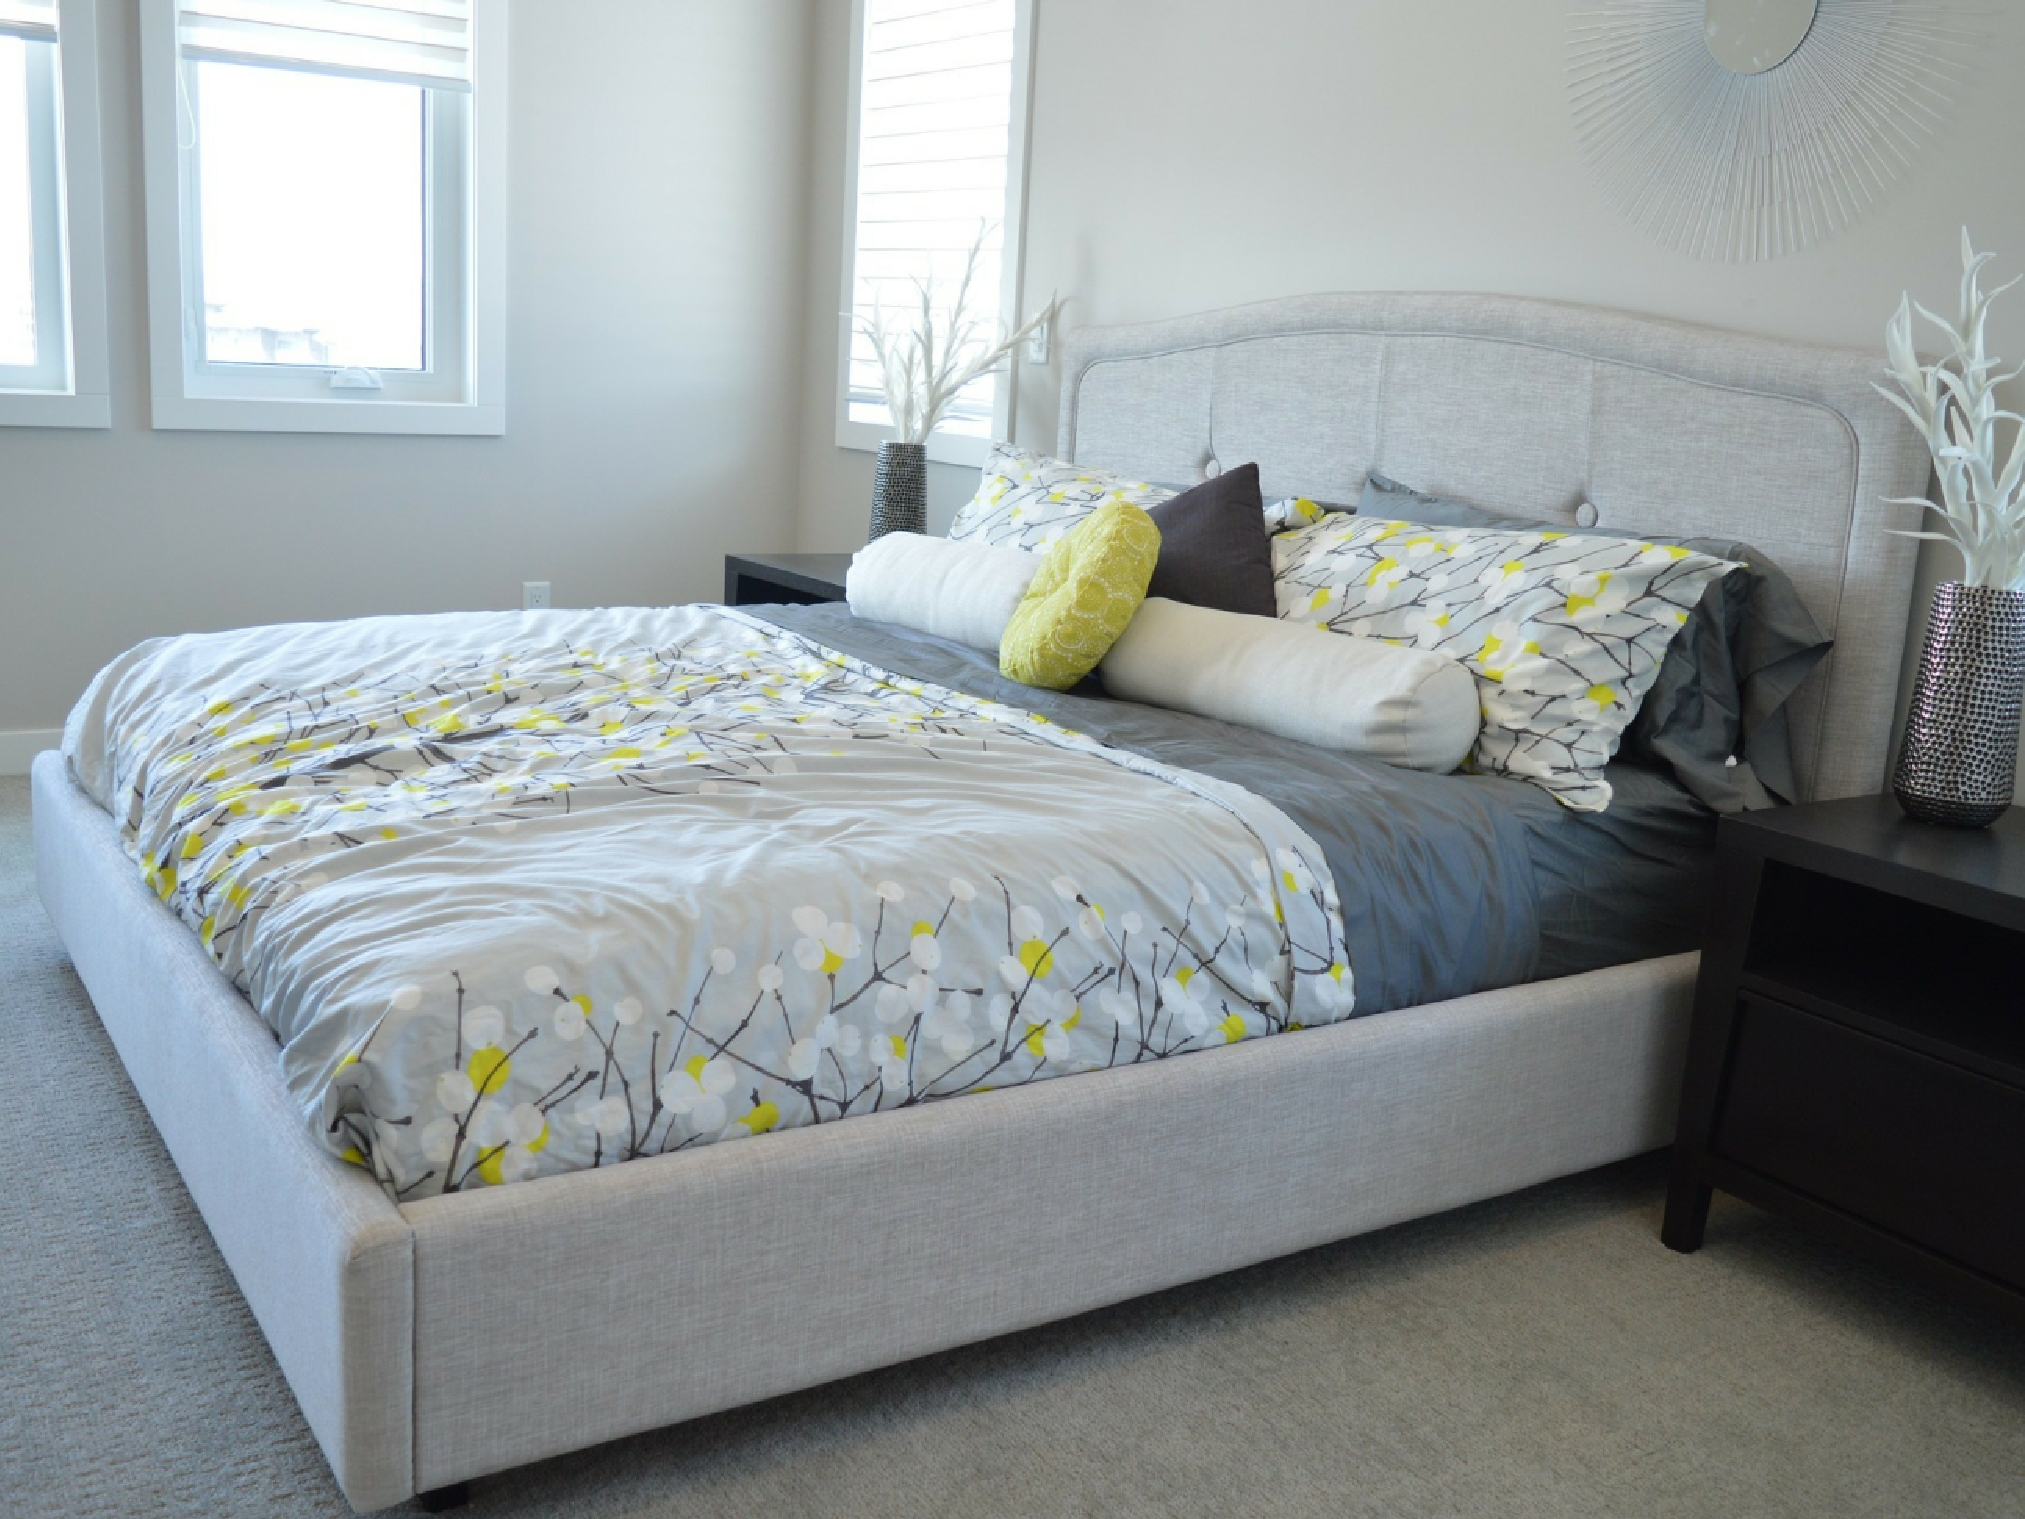 5 Amazing Ways To Decorate Your Guest Bedroom Mom With Five